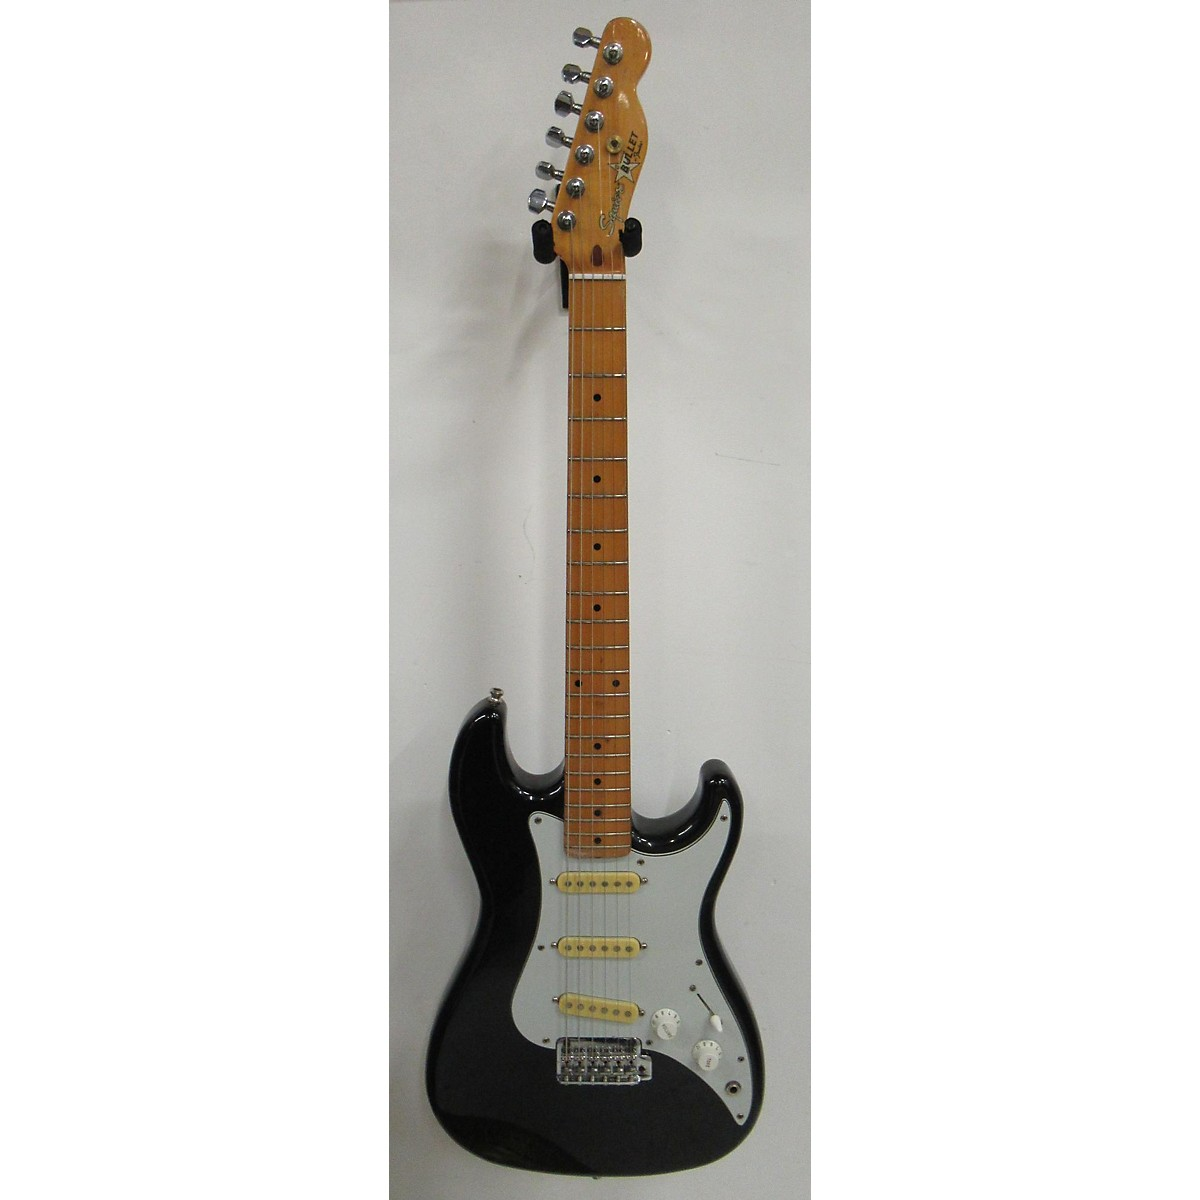 Squier 1986 Bullet Stratocaster Solid Body Electric Guitar